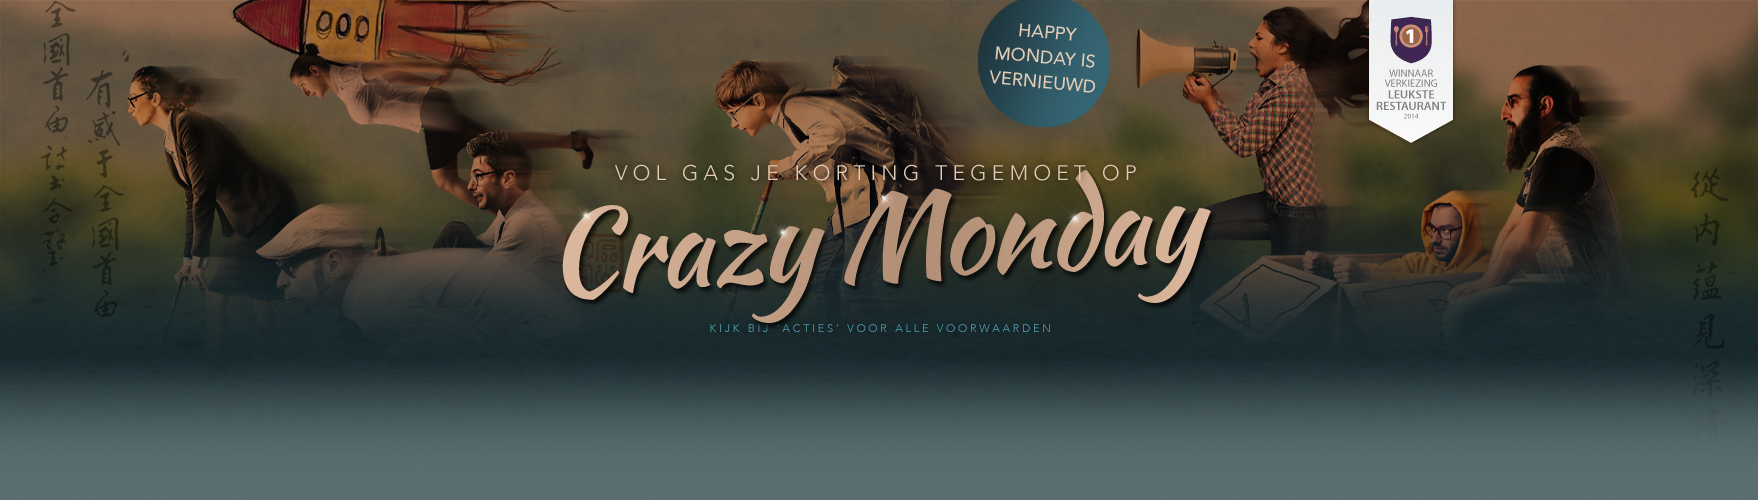 Crazy Mondays bij Eastern Plaza!